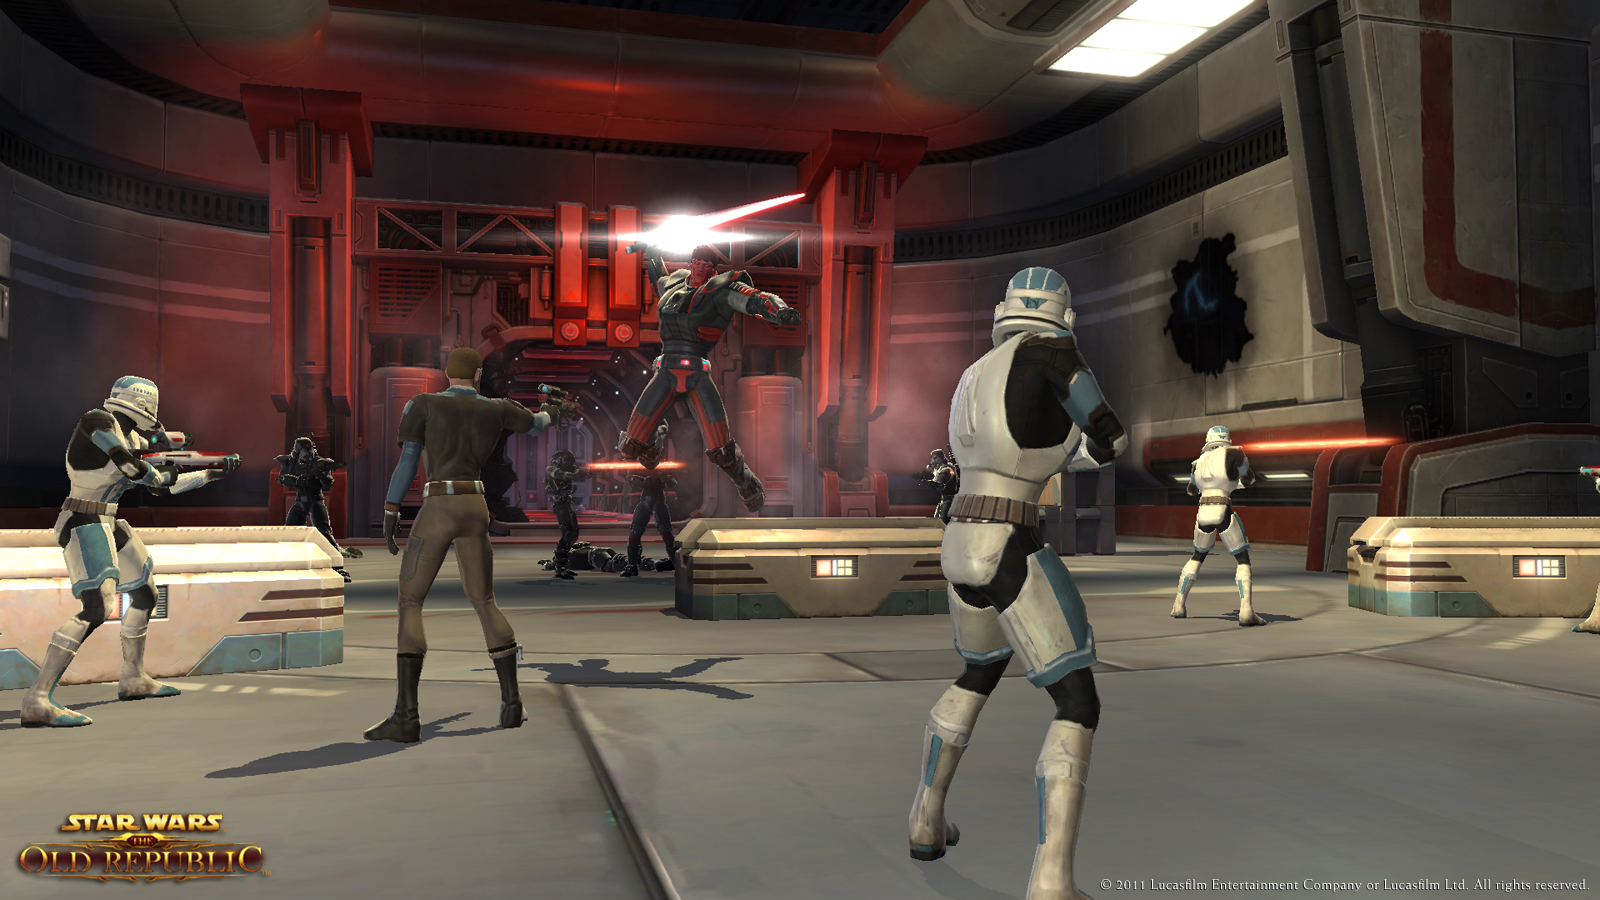 Star Wars: The Old Republic Gameplay Screenshot 1